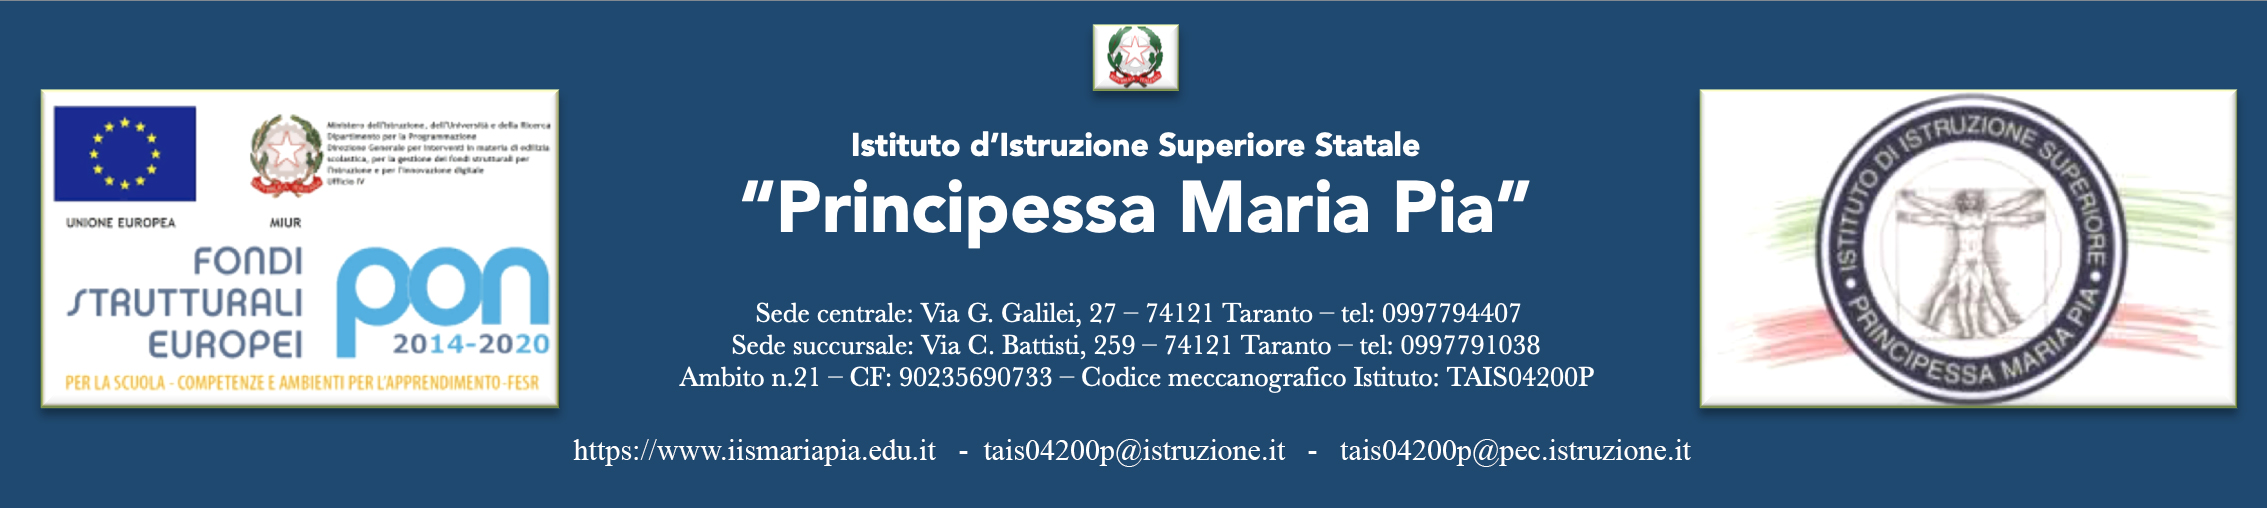 www.iismariapia.edu.it